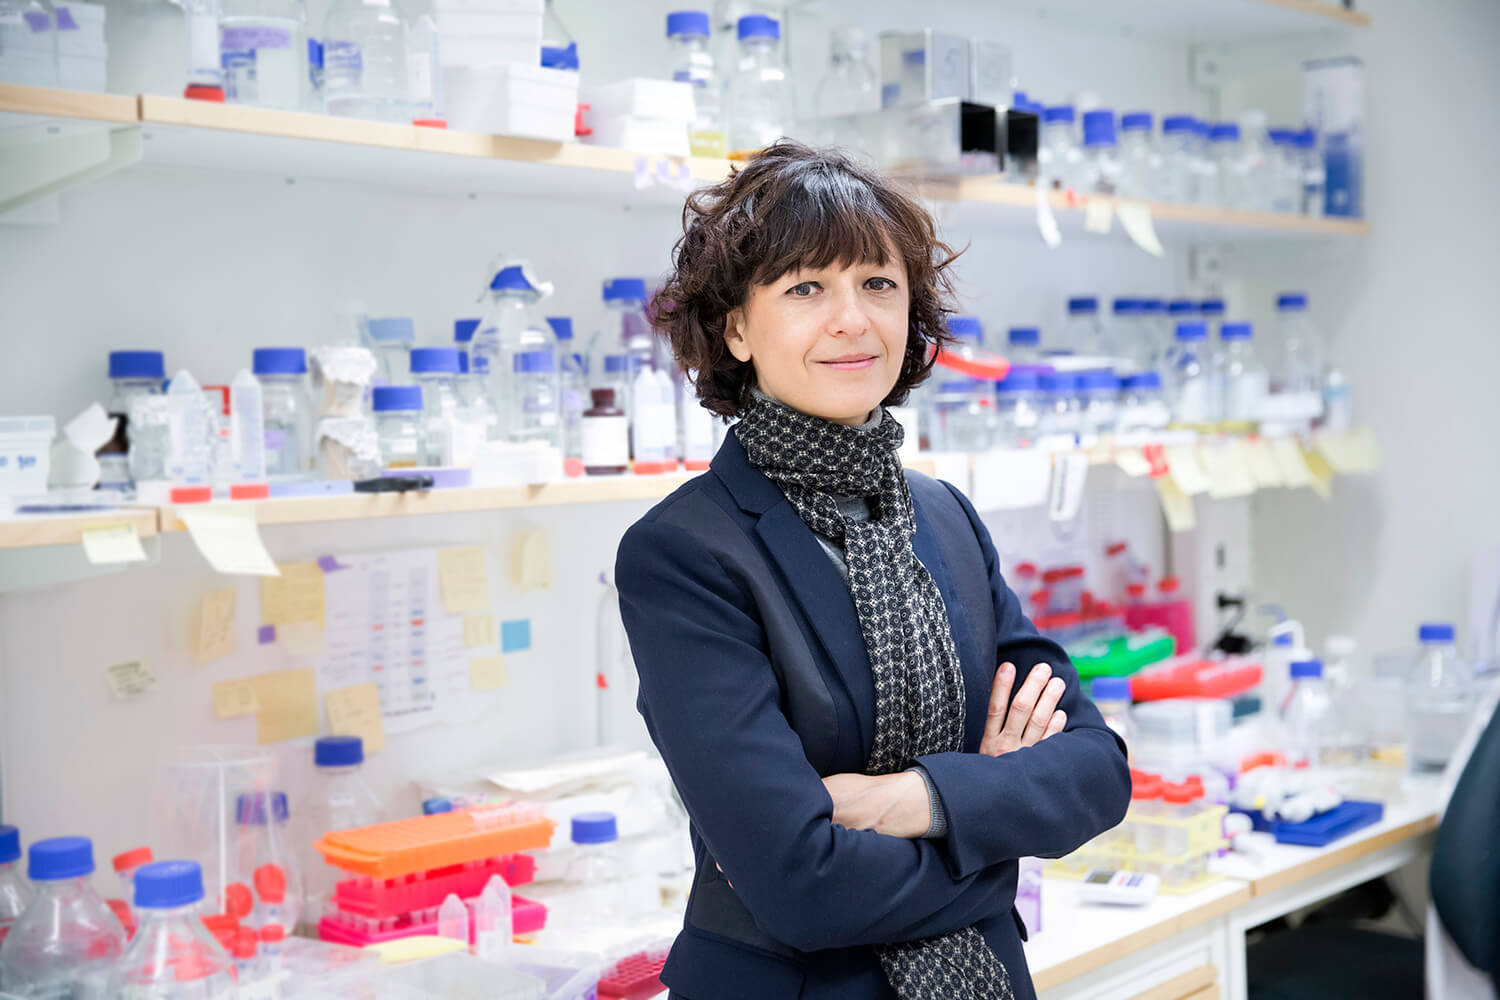 Emmanuelle Charpentier, honoured with the 2020 Nobel Prize in Chemistry